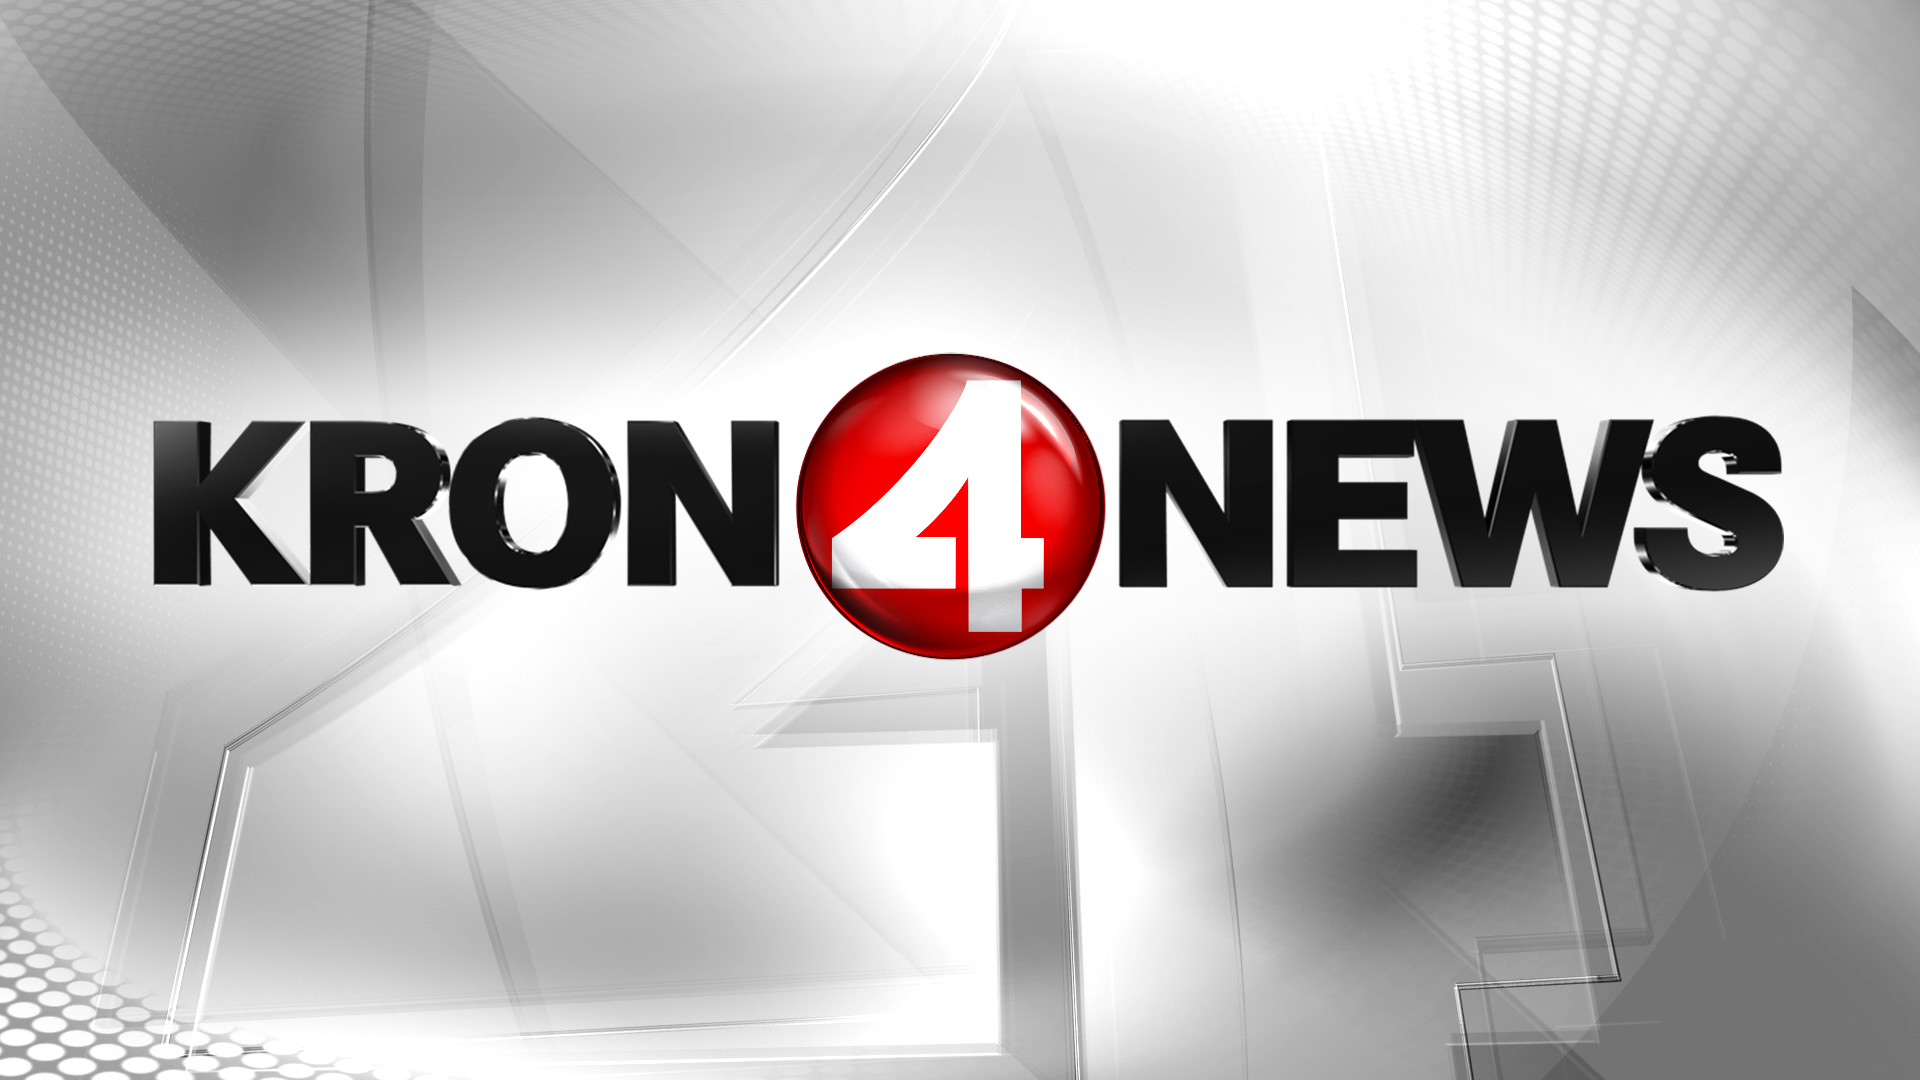 graphic FS KRON4 NEWS_1523150811482.jpg.jpg